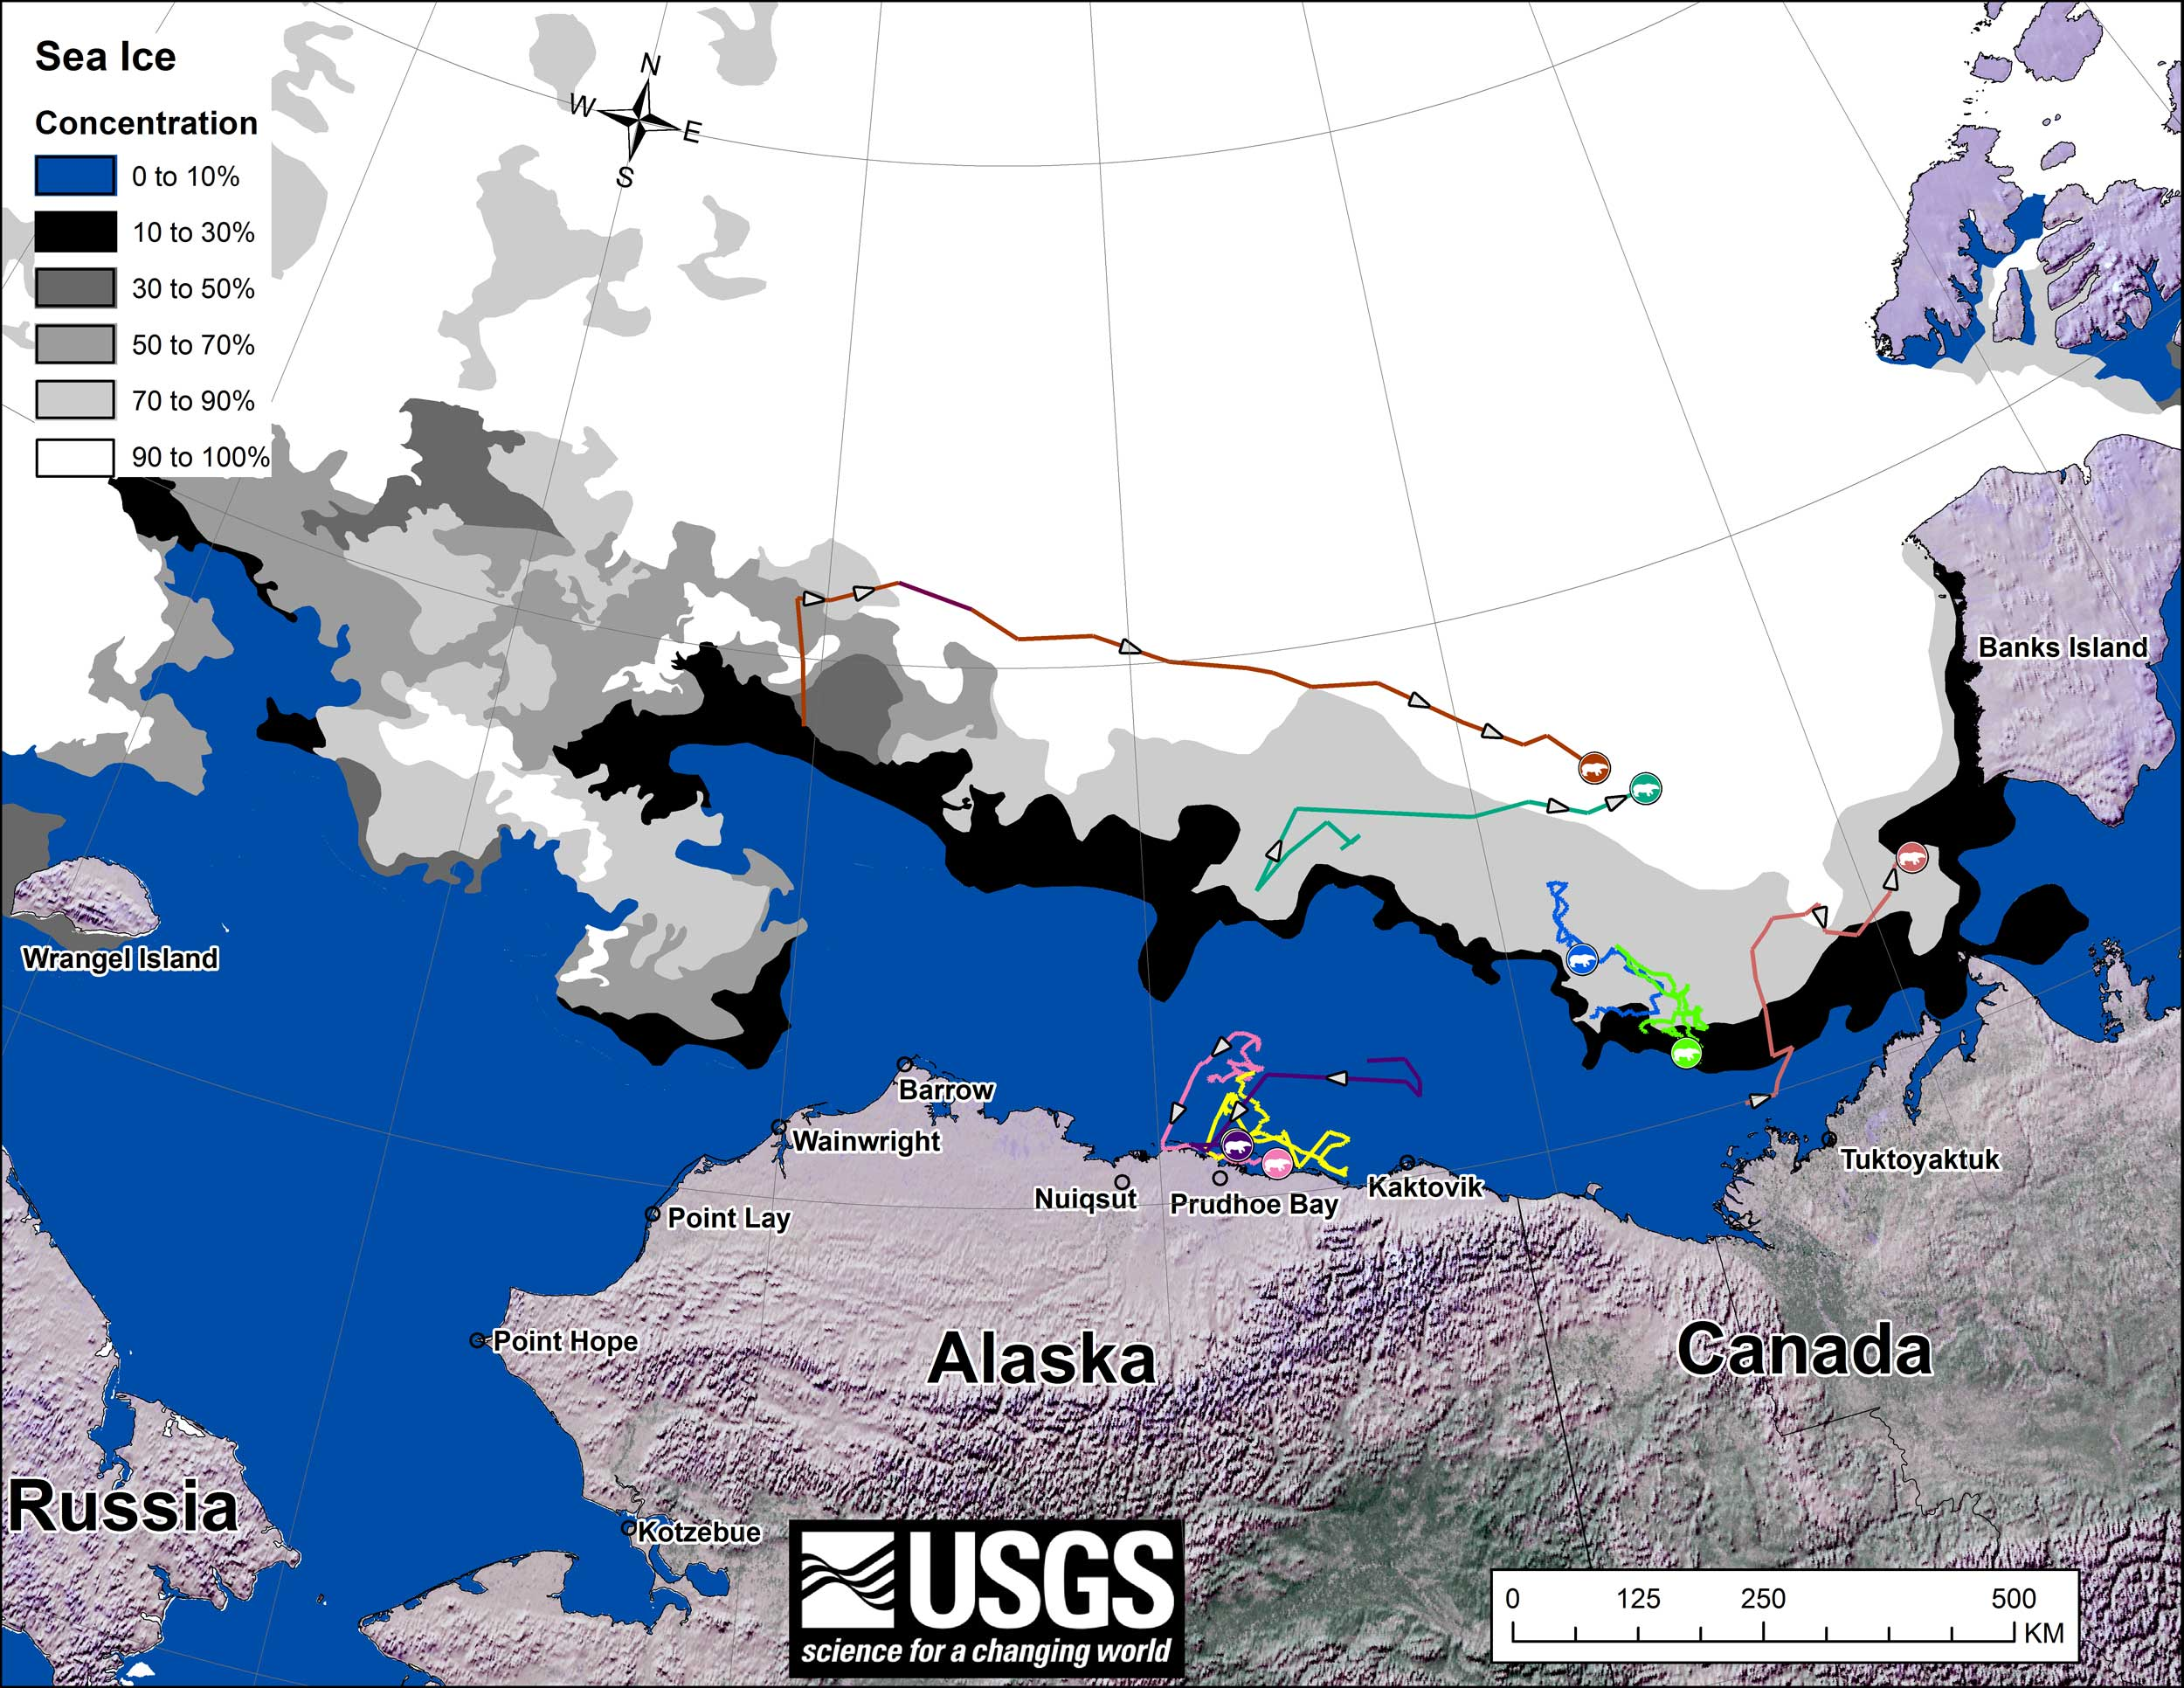 Kaktovik Alaska Map.Polar Bears At Kaktovik Alaska Not Stranded Due To Retreating Ice